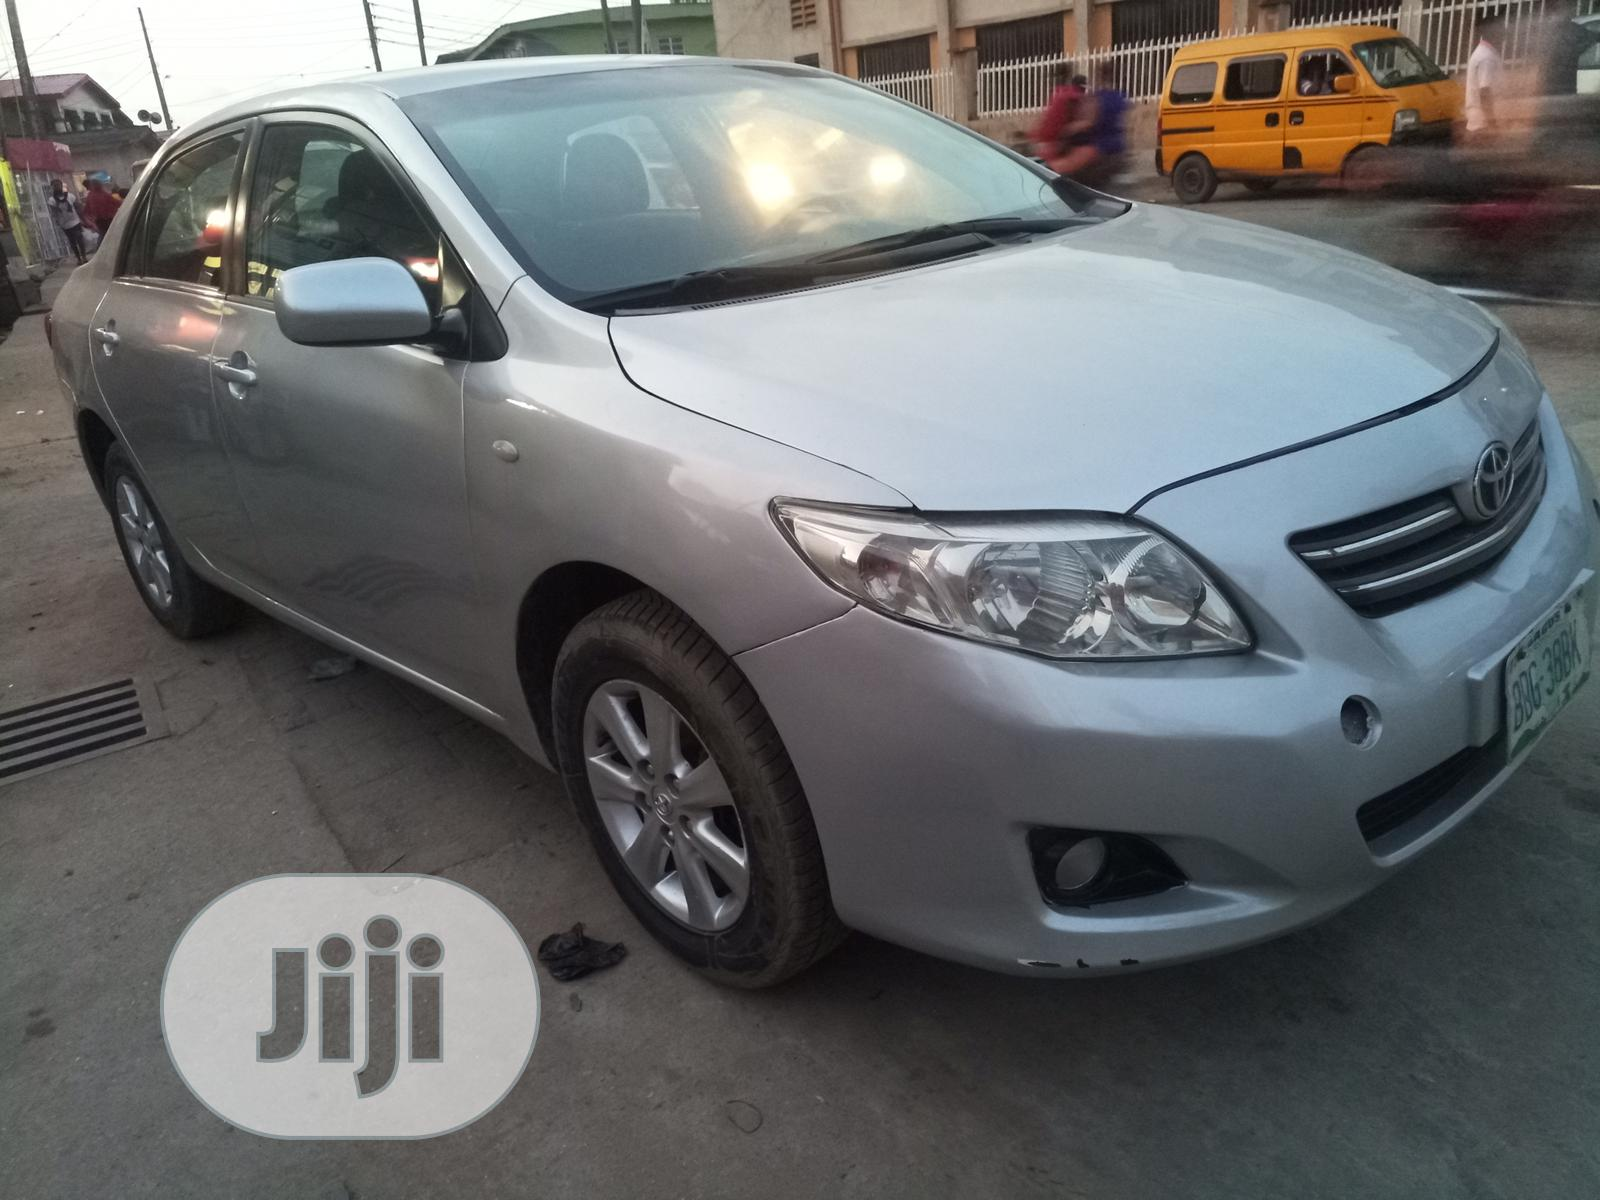 Toyota Corolla 2012 Silver In Surulere Cars Eze Theophilus Jiji Ng For Sale In Surulere Buy Cars From Eze Theophilus On Jiji Ng